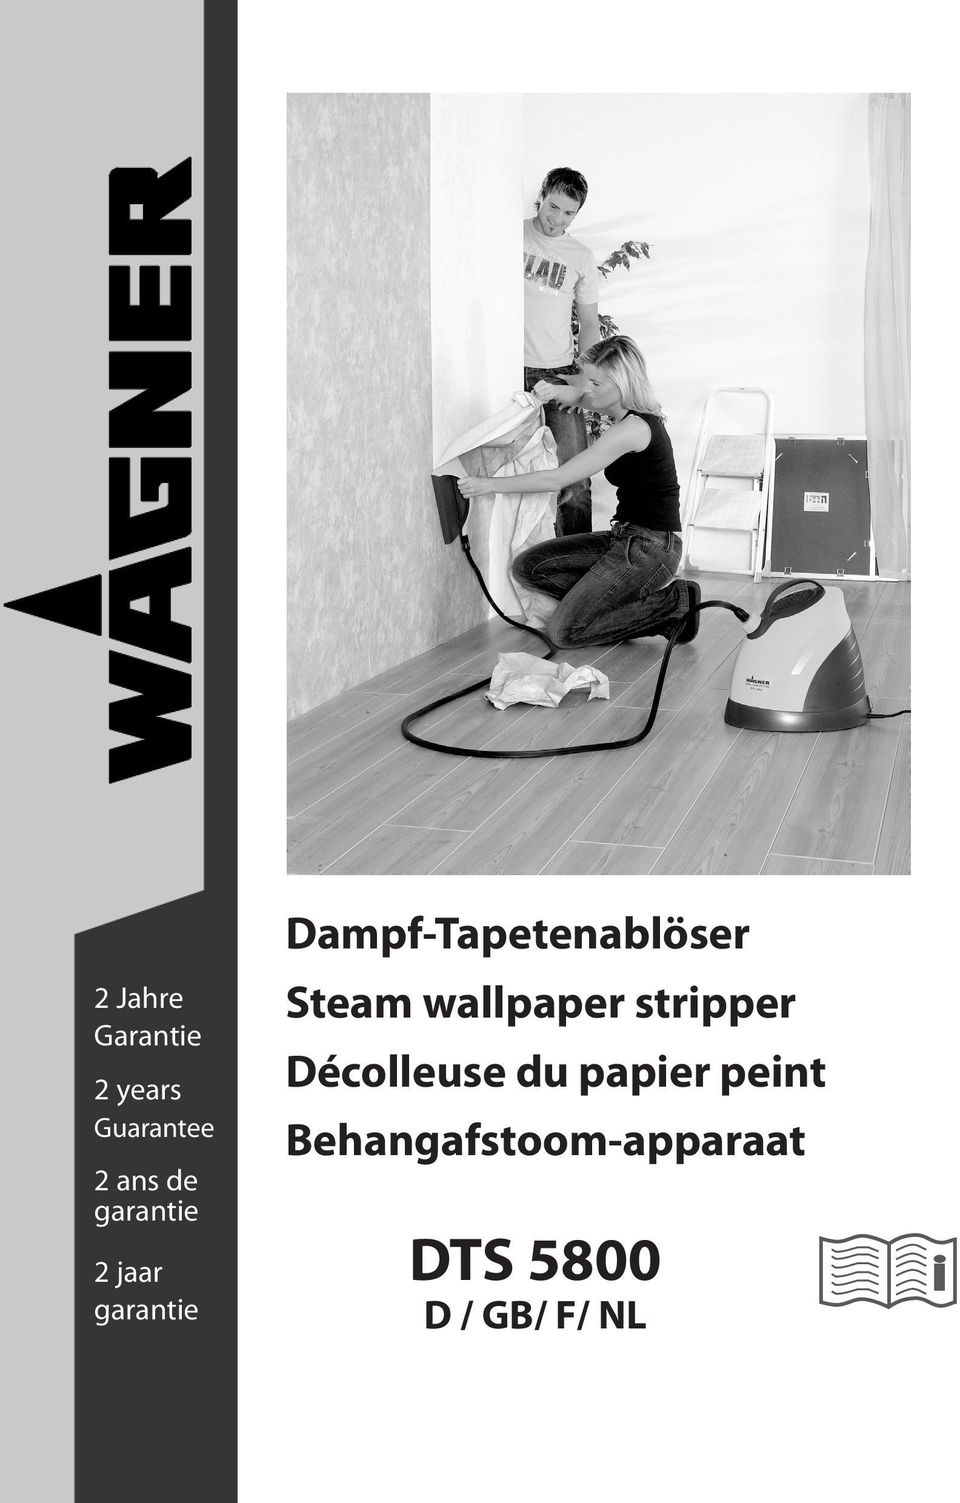 Dampf-Tapetenablöser Steam wallpaper